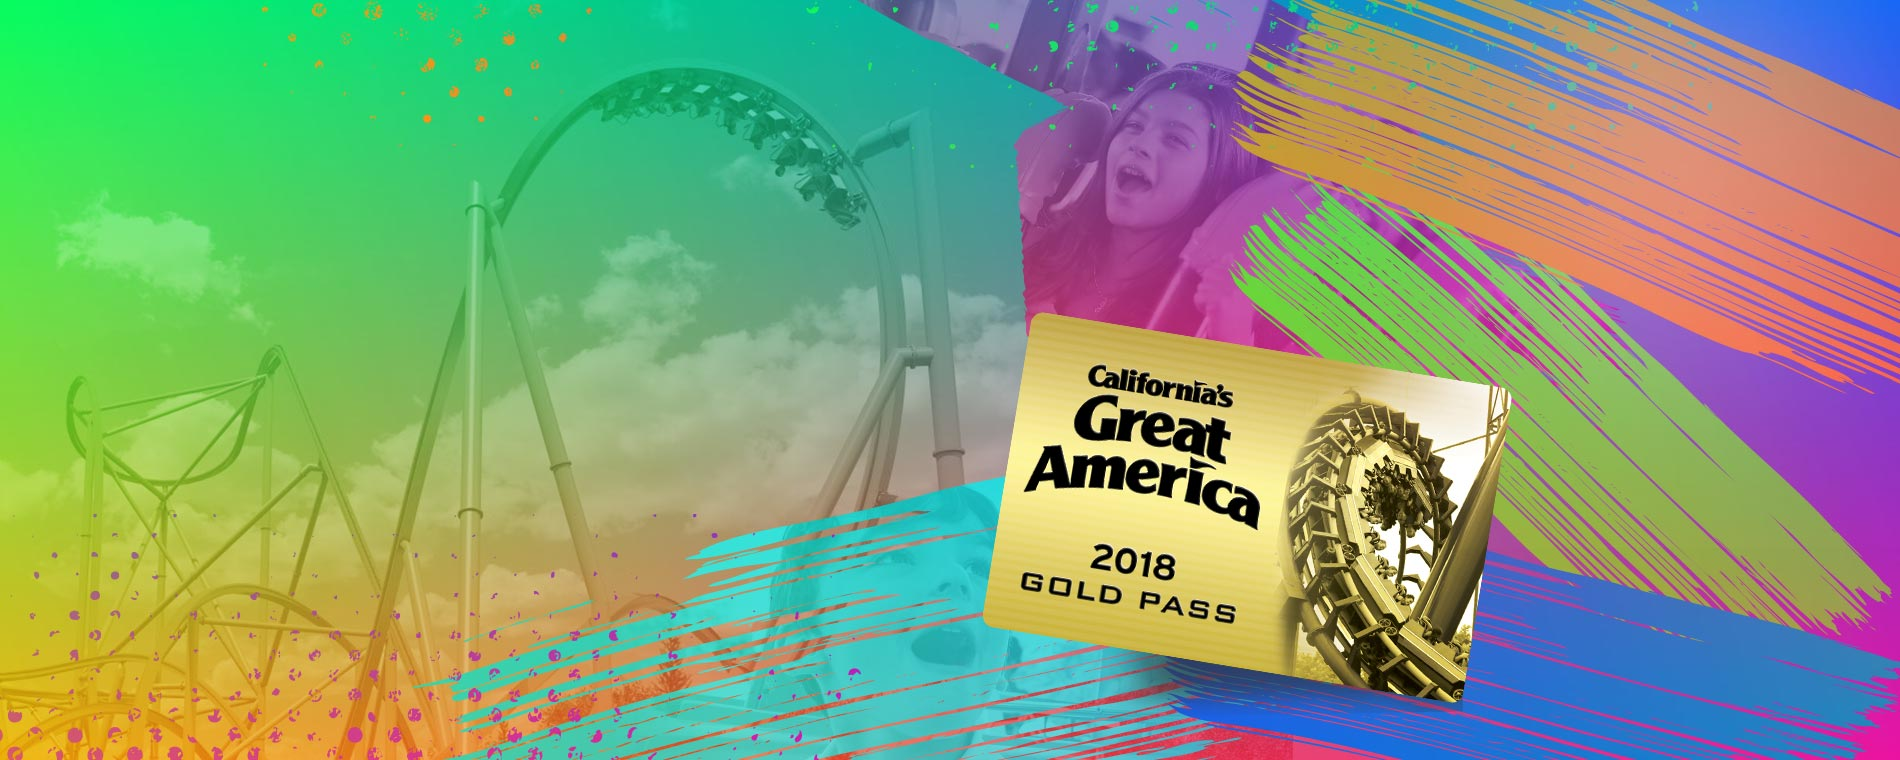 California's Great America Gold Season Pass